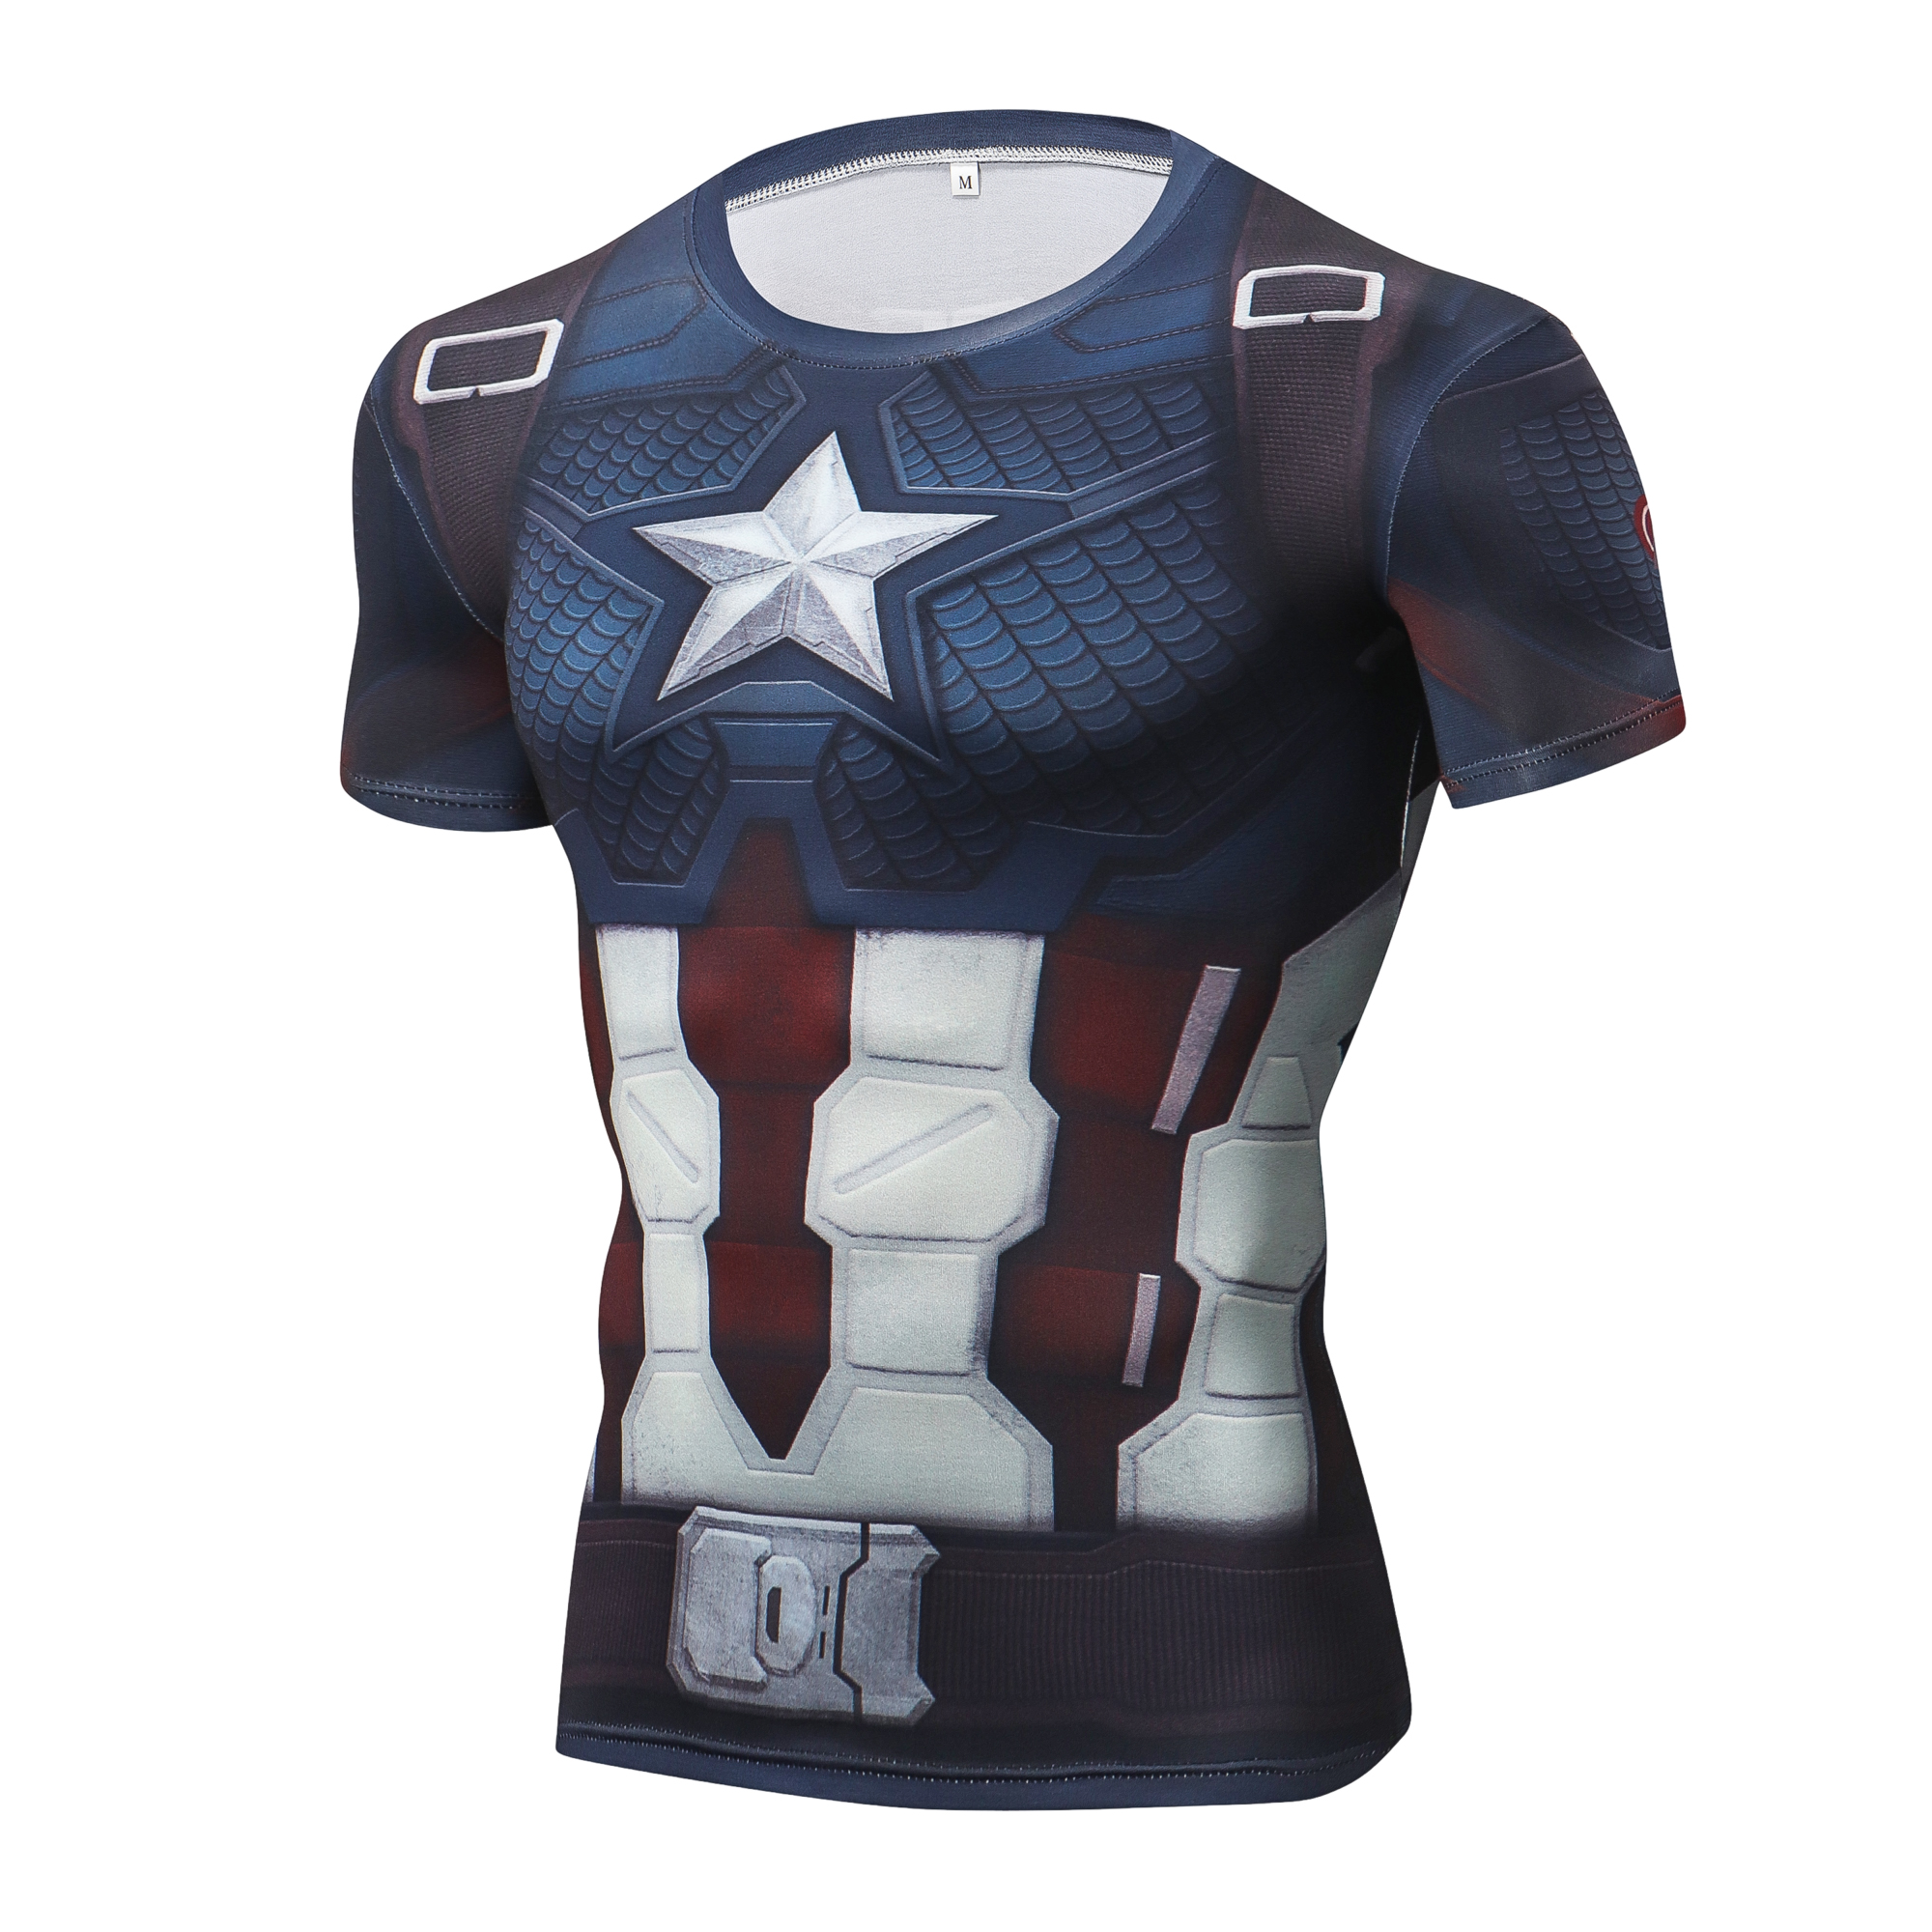 Marvel 4 Endgame Captain America T Shirt Summer Tshirt 3d Print Superhero Compression Shirt Sweatshirt Fitness Clothing